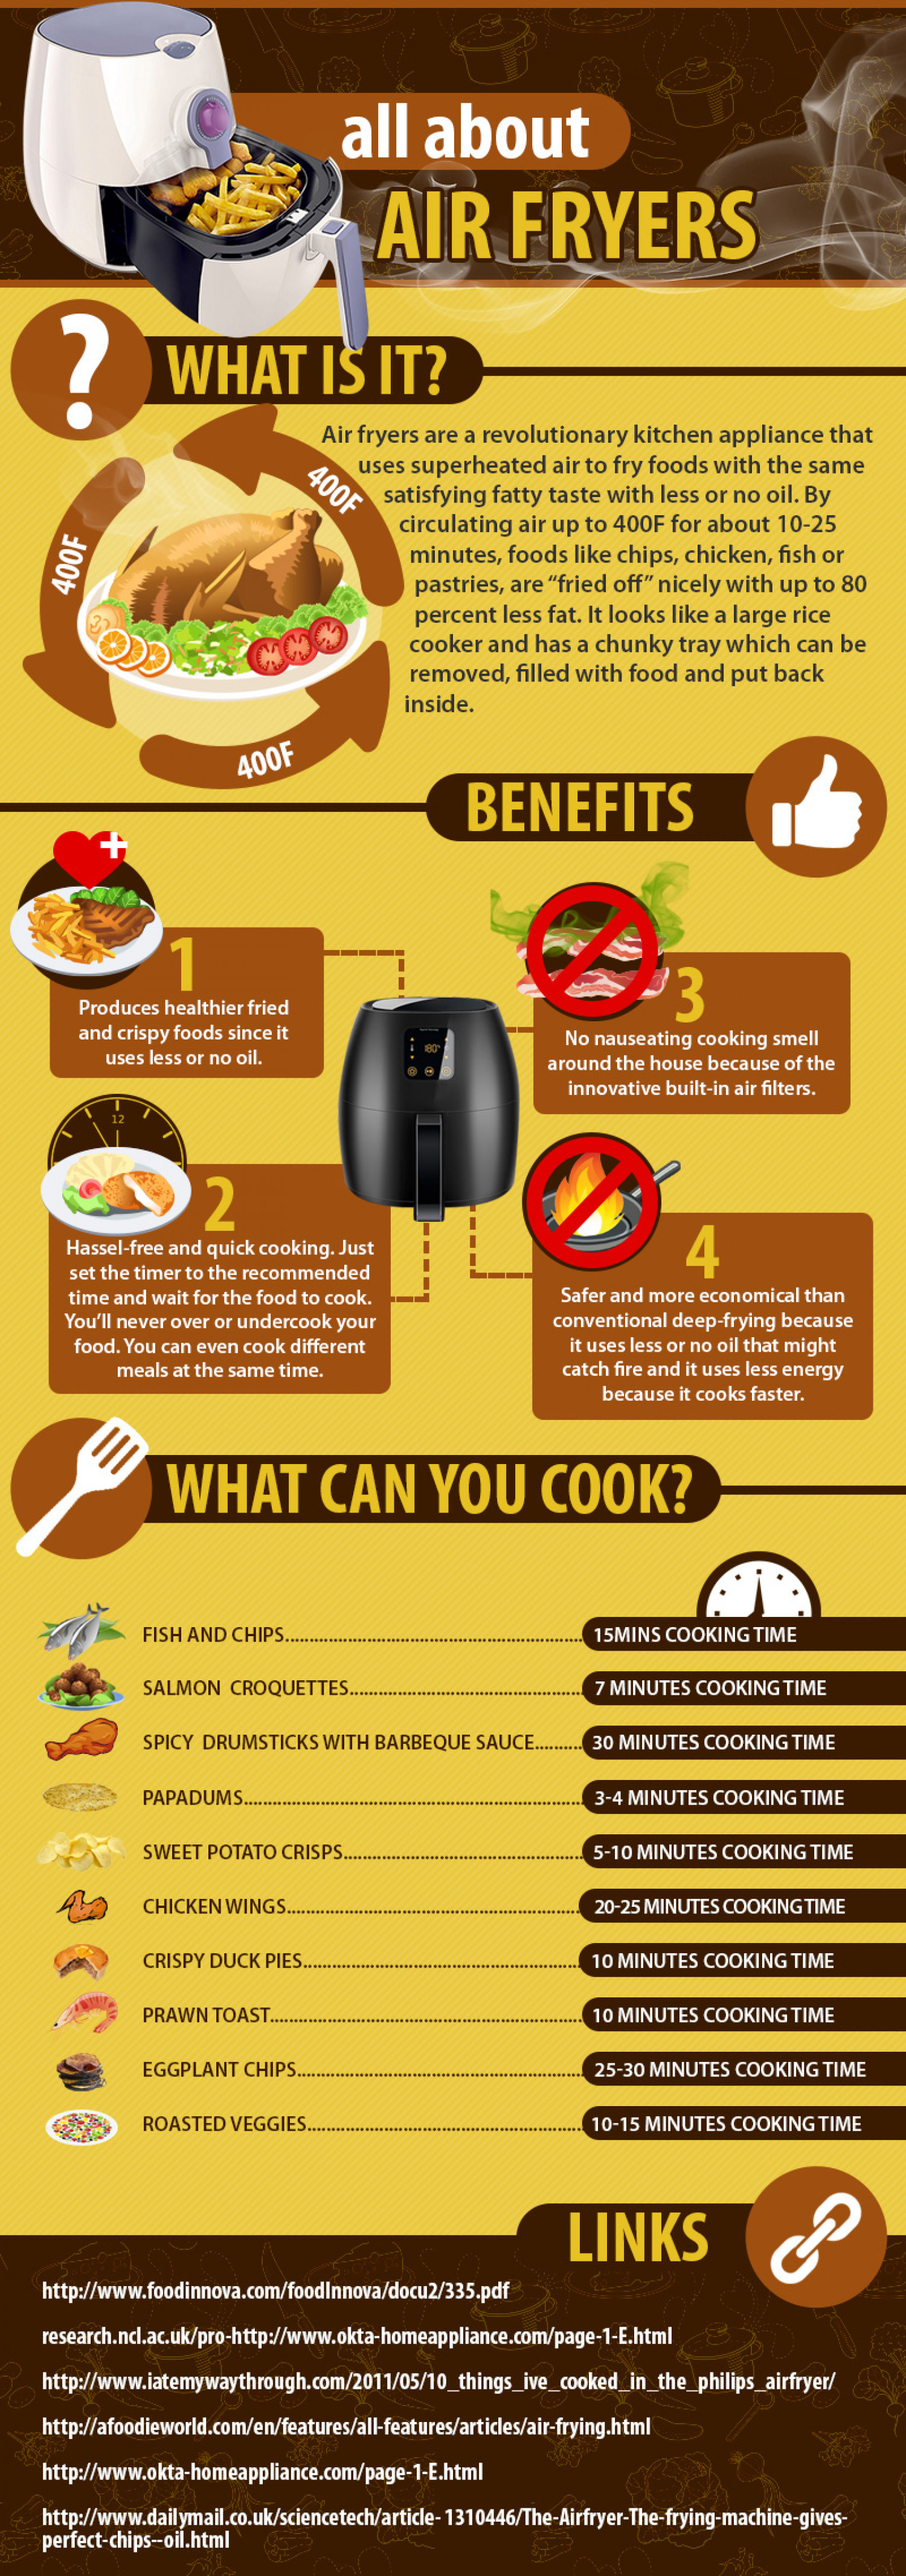 all about Air Fryers Infographic